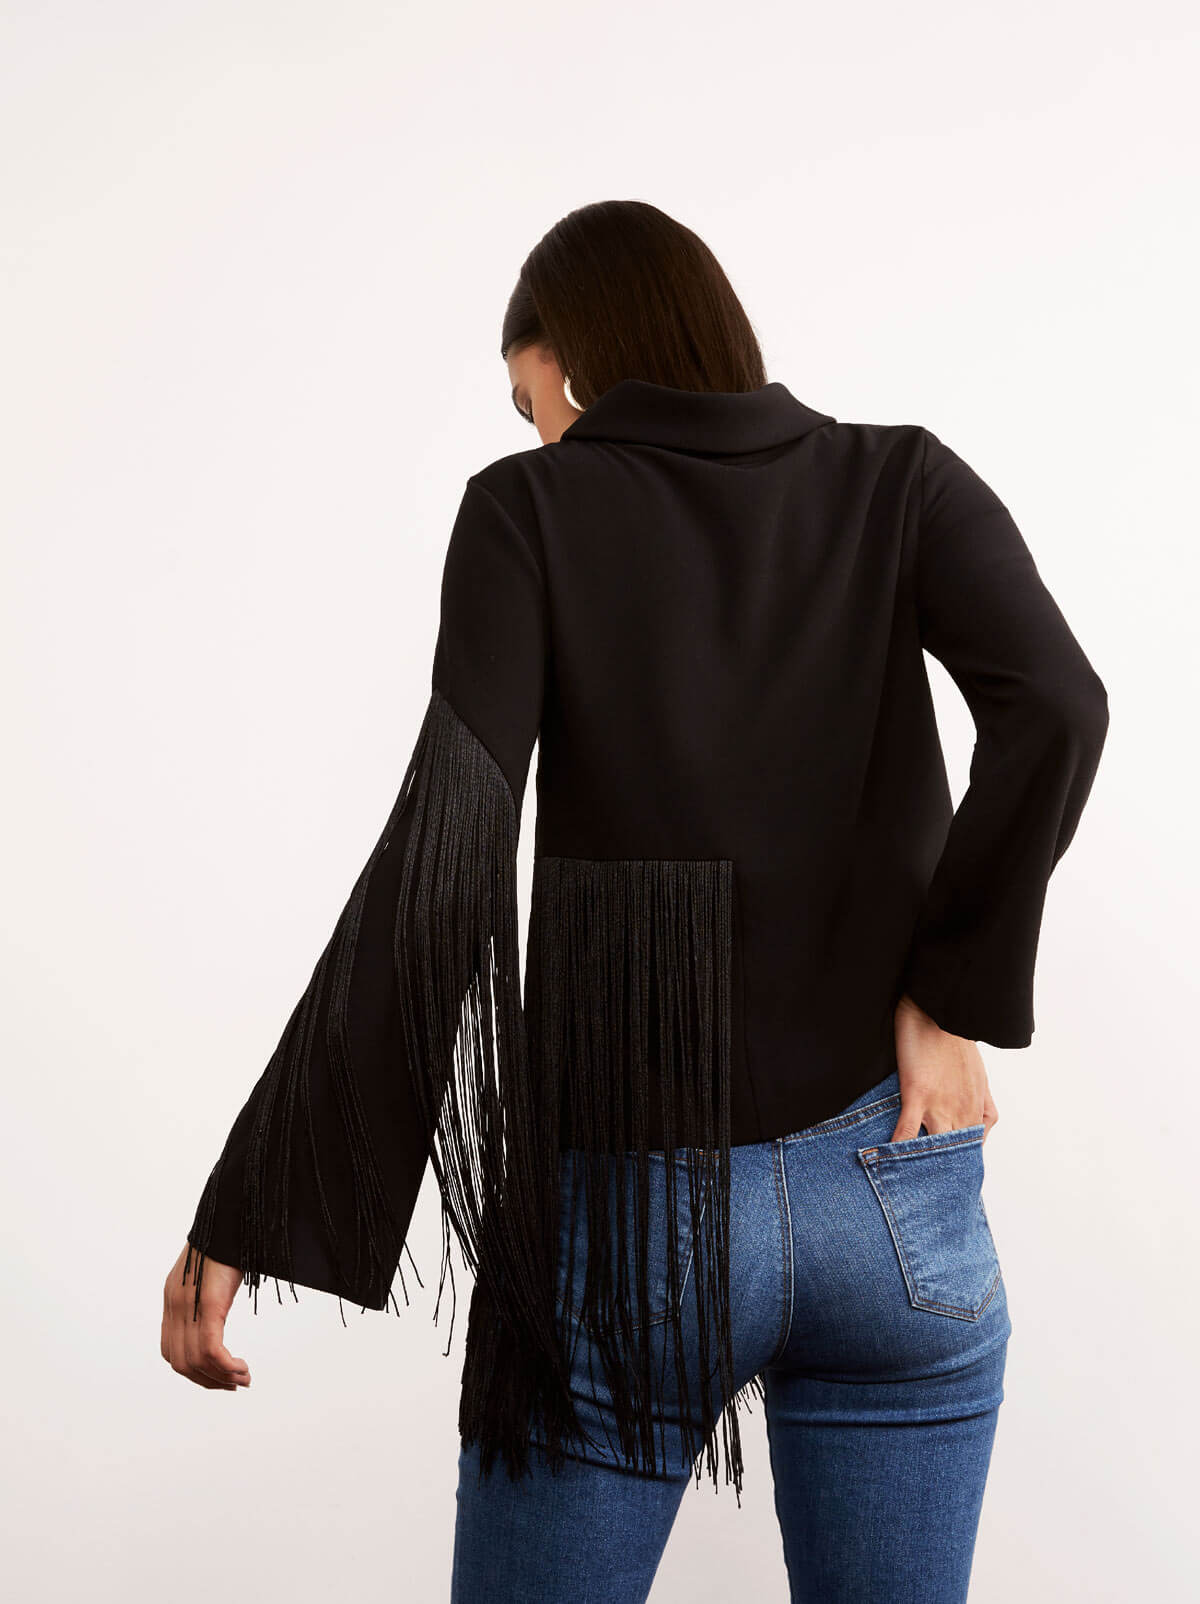 Viviana Black Long Sleeve Tassel Top by KITRI Studio